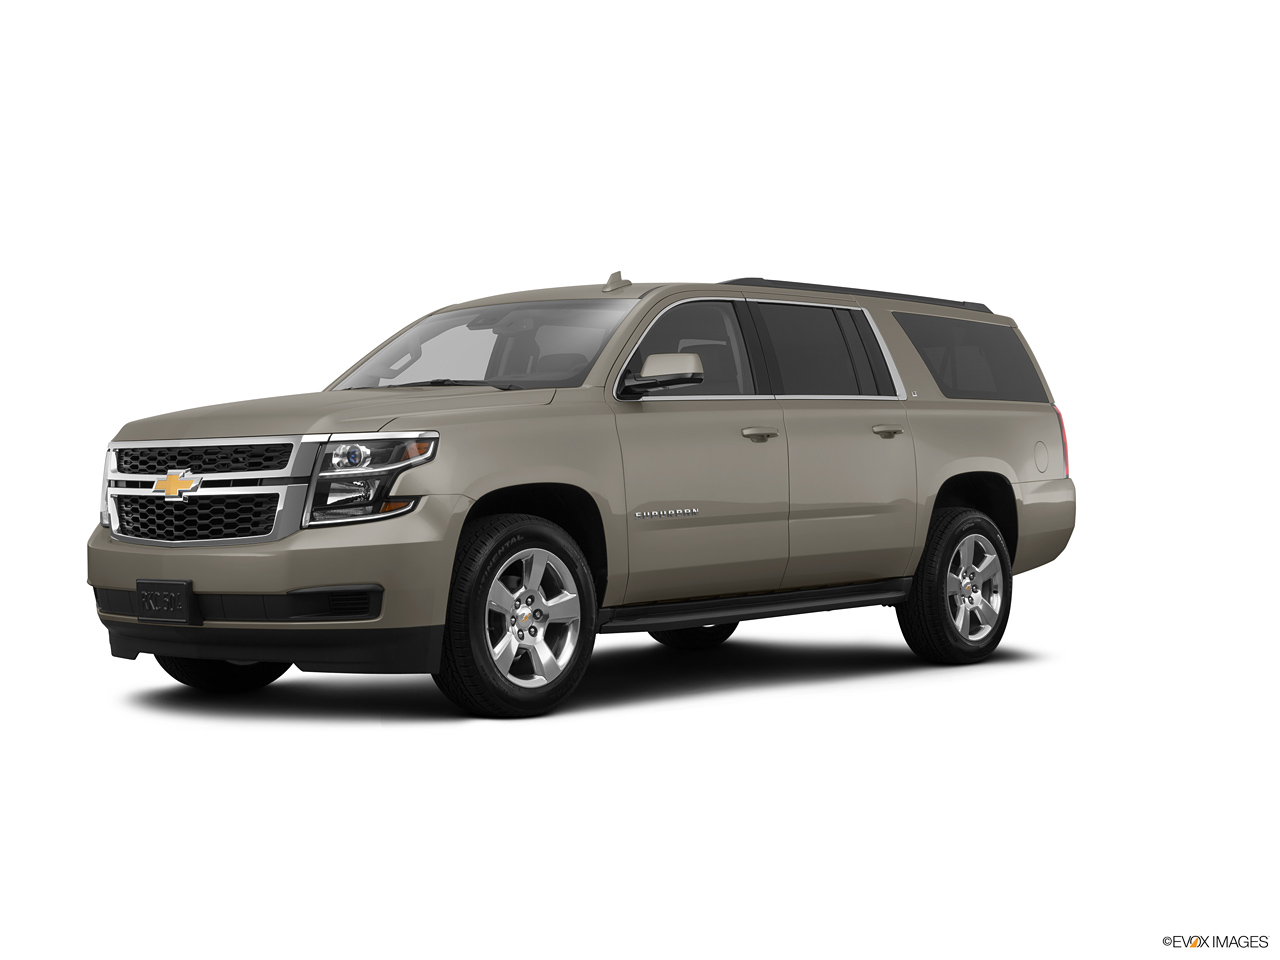 2017 chevrolet suburban fuel tank capacity reviews on autos post. Black Bedroom Furniture Sets. Home Design Ideas